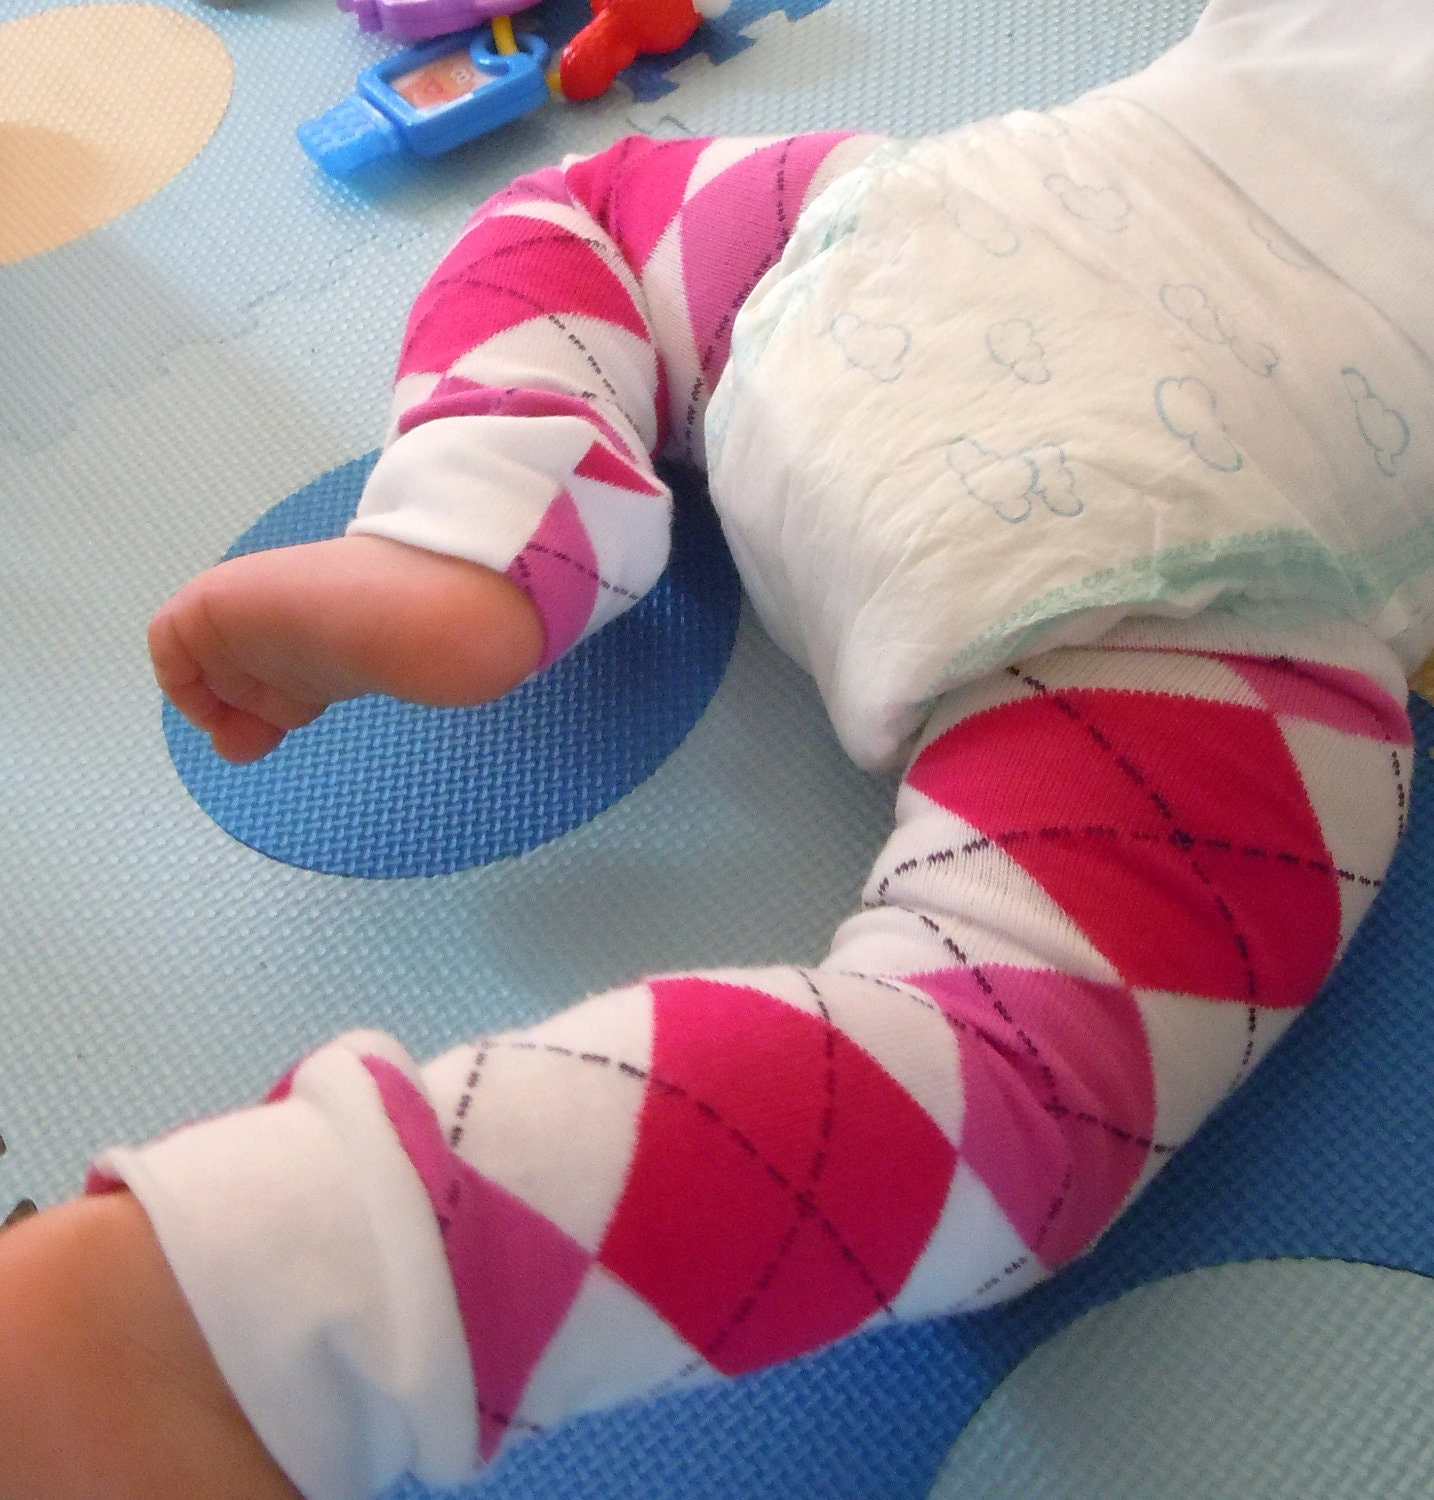 Babypantz Baby Toddler Legwarmers Covers Boy Girl Pink Argyle